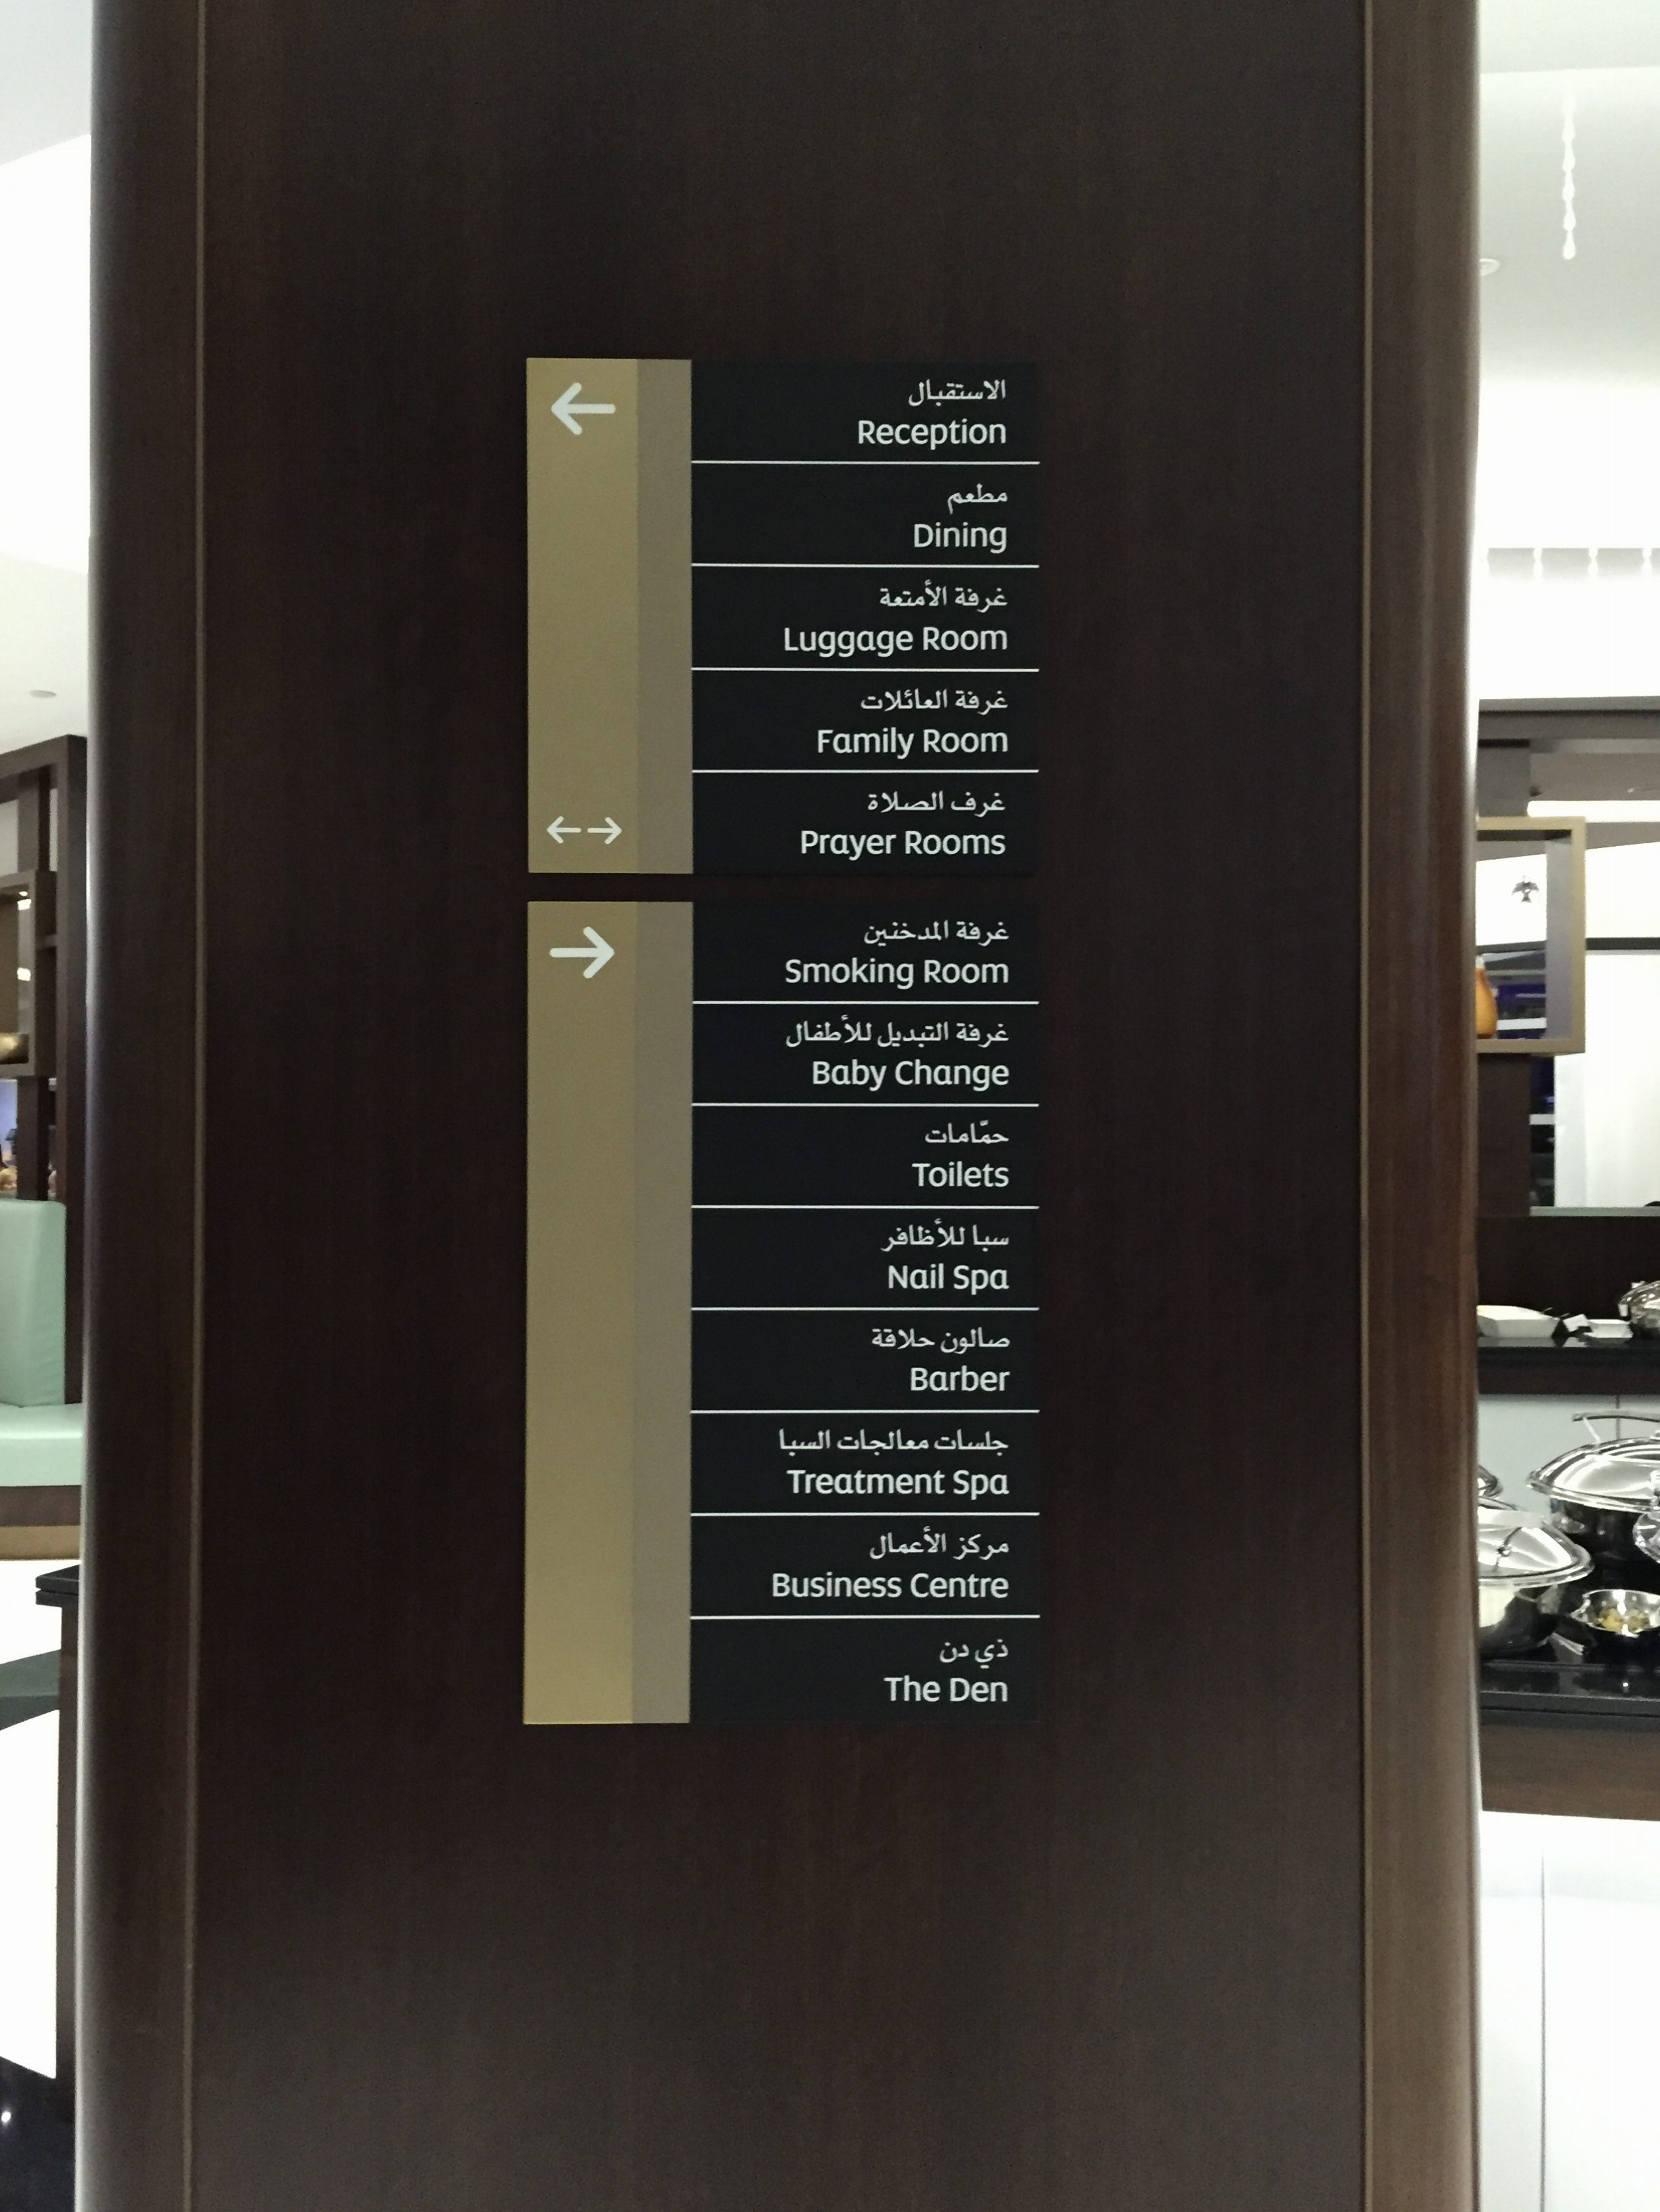 The Lounge Directory